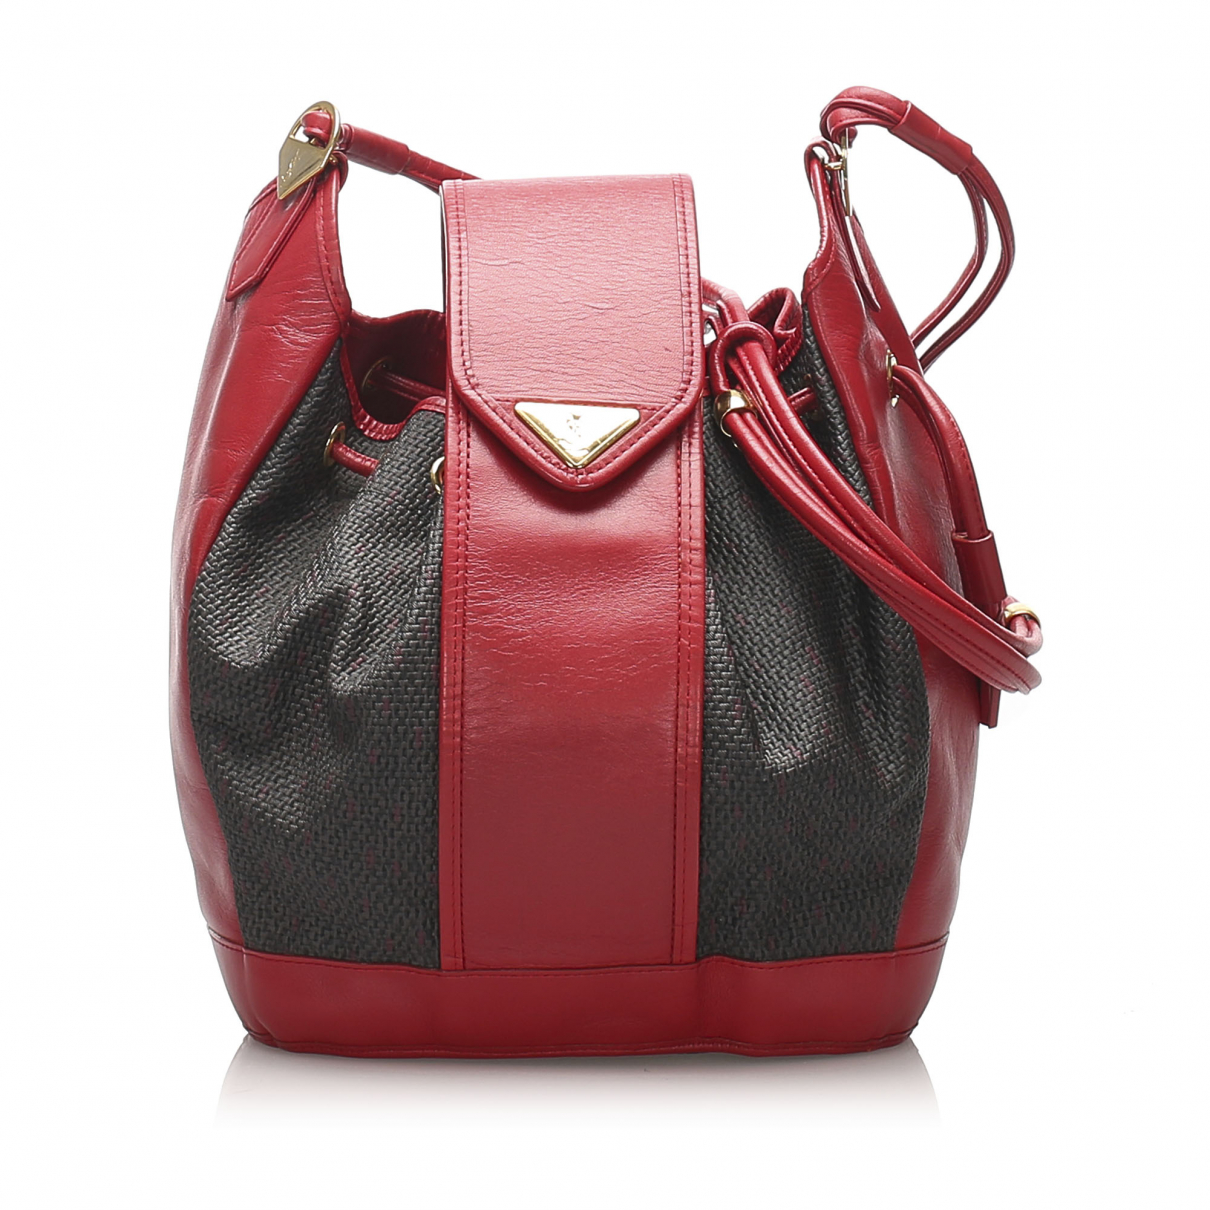 Yves Saint Laurent N Red Cloth handbag for Women N